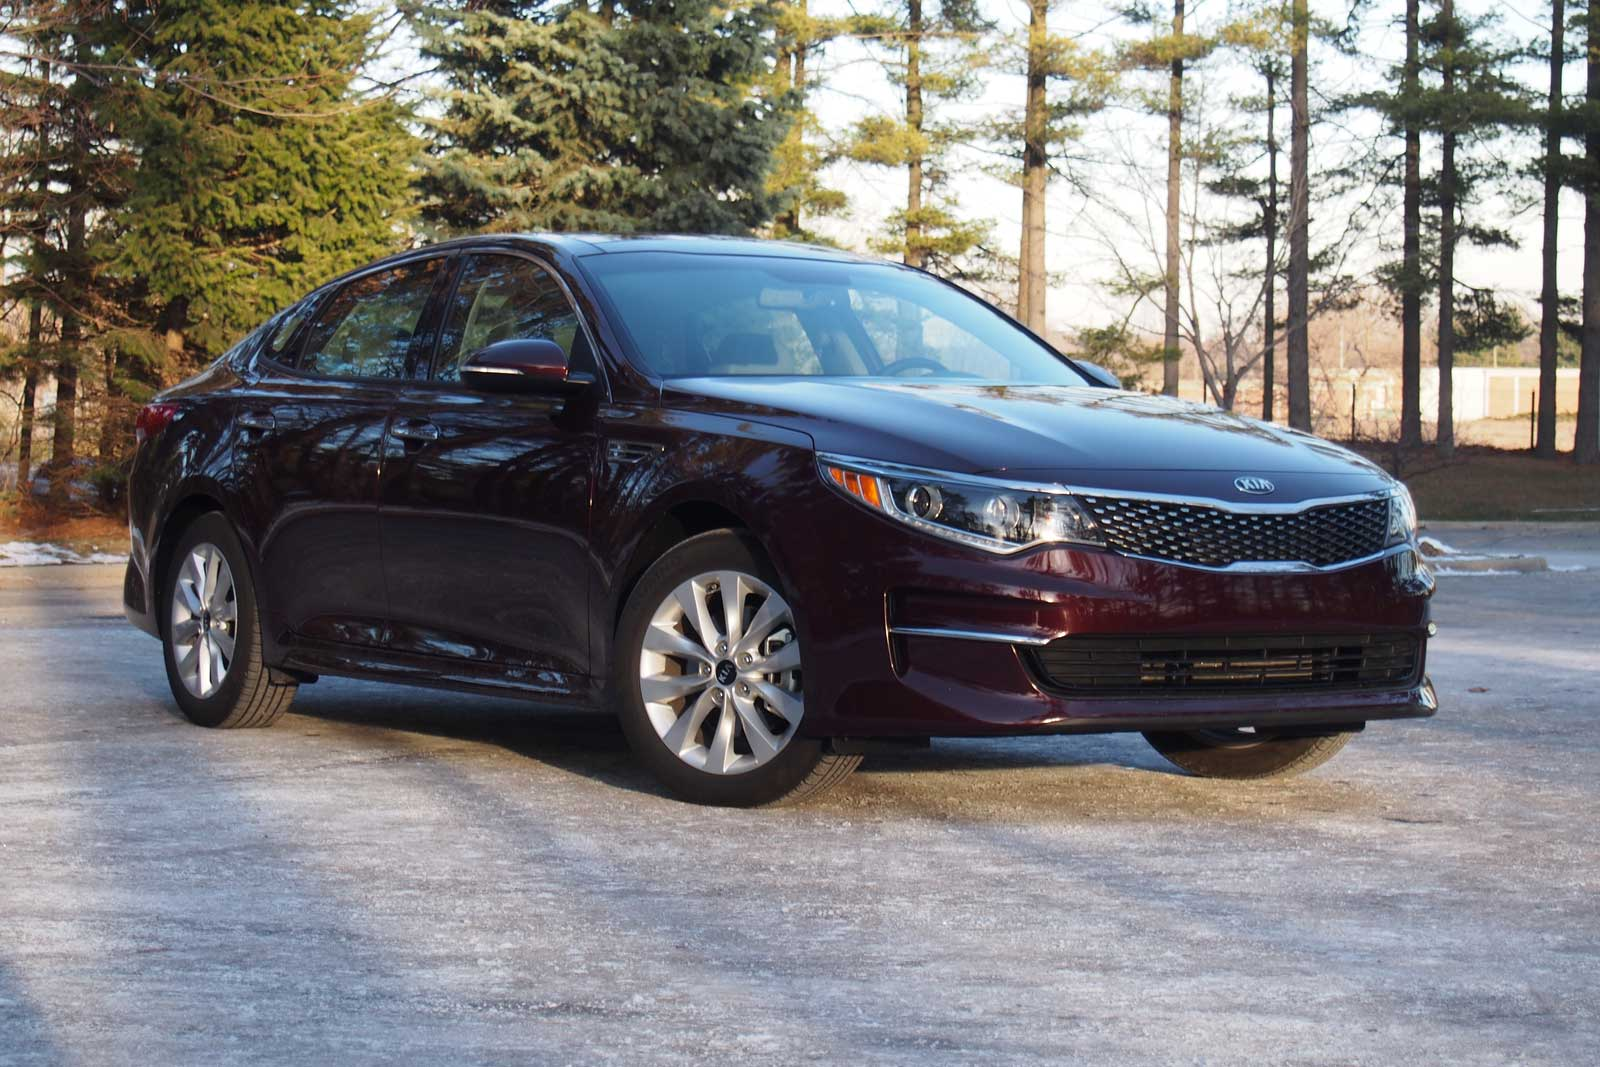 2019 Kia Forte Breaks Cover With in addition Honda Beat Scooter 2015 1988 moreover 540i Xdrive M Sport 4dr Auto 77480 besides Supreme Beings Sports Car Giant Test 2015 Car November 2015 together with 2017 Porsche Cayenne Changes Platform. on kia 4 cylinder cars that are